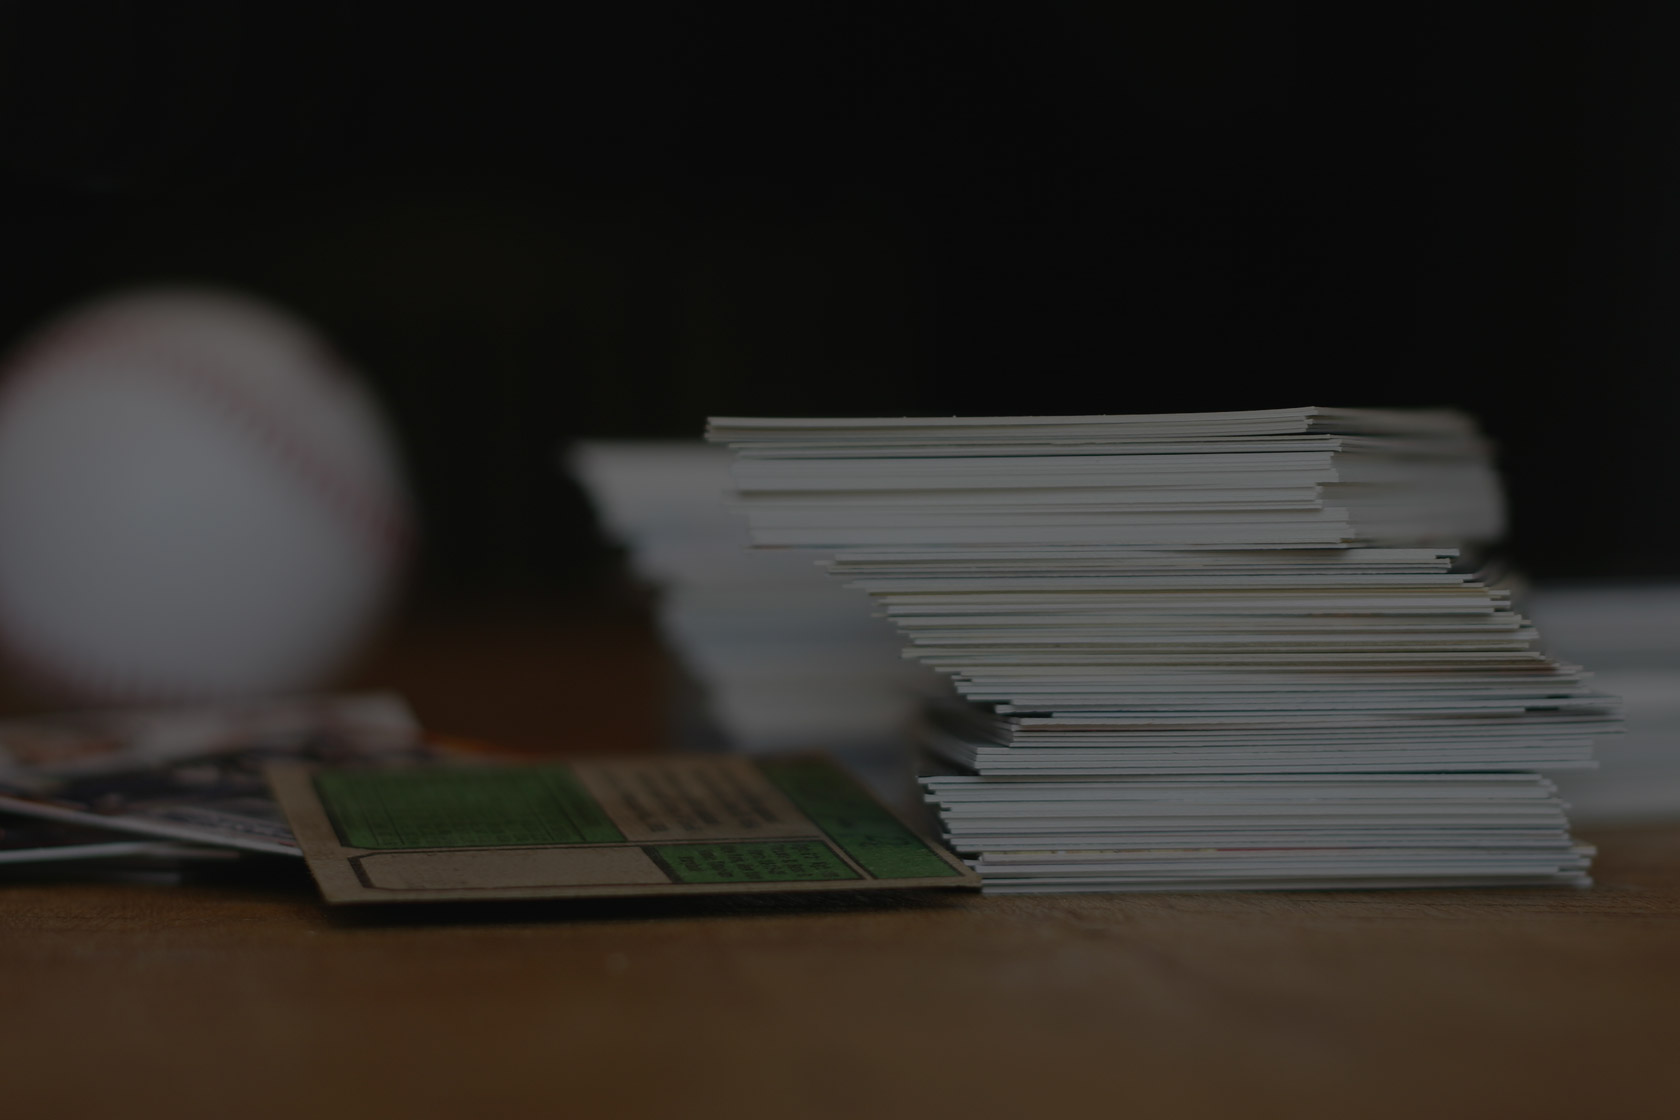 stack of baseball cards